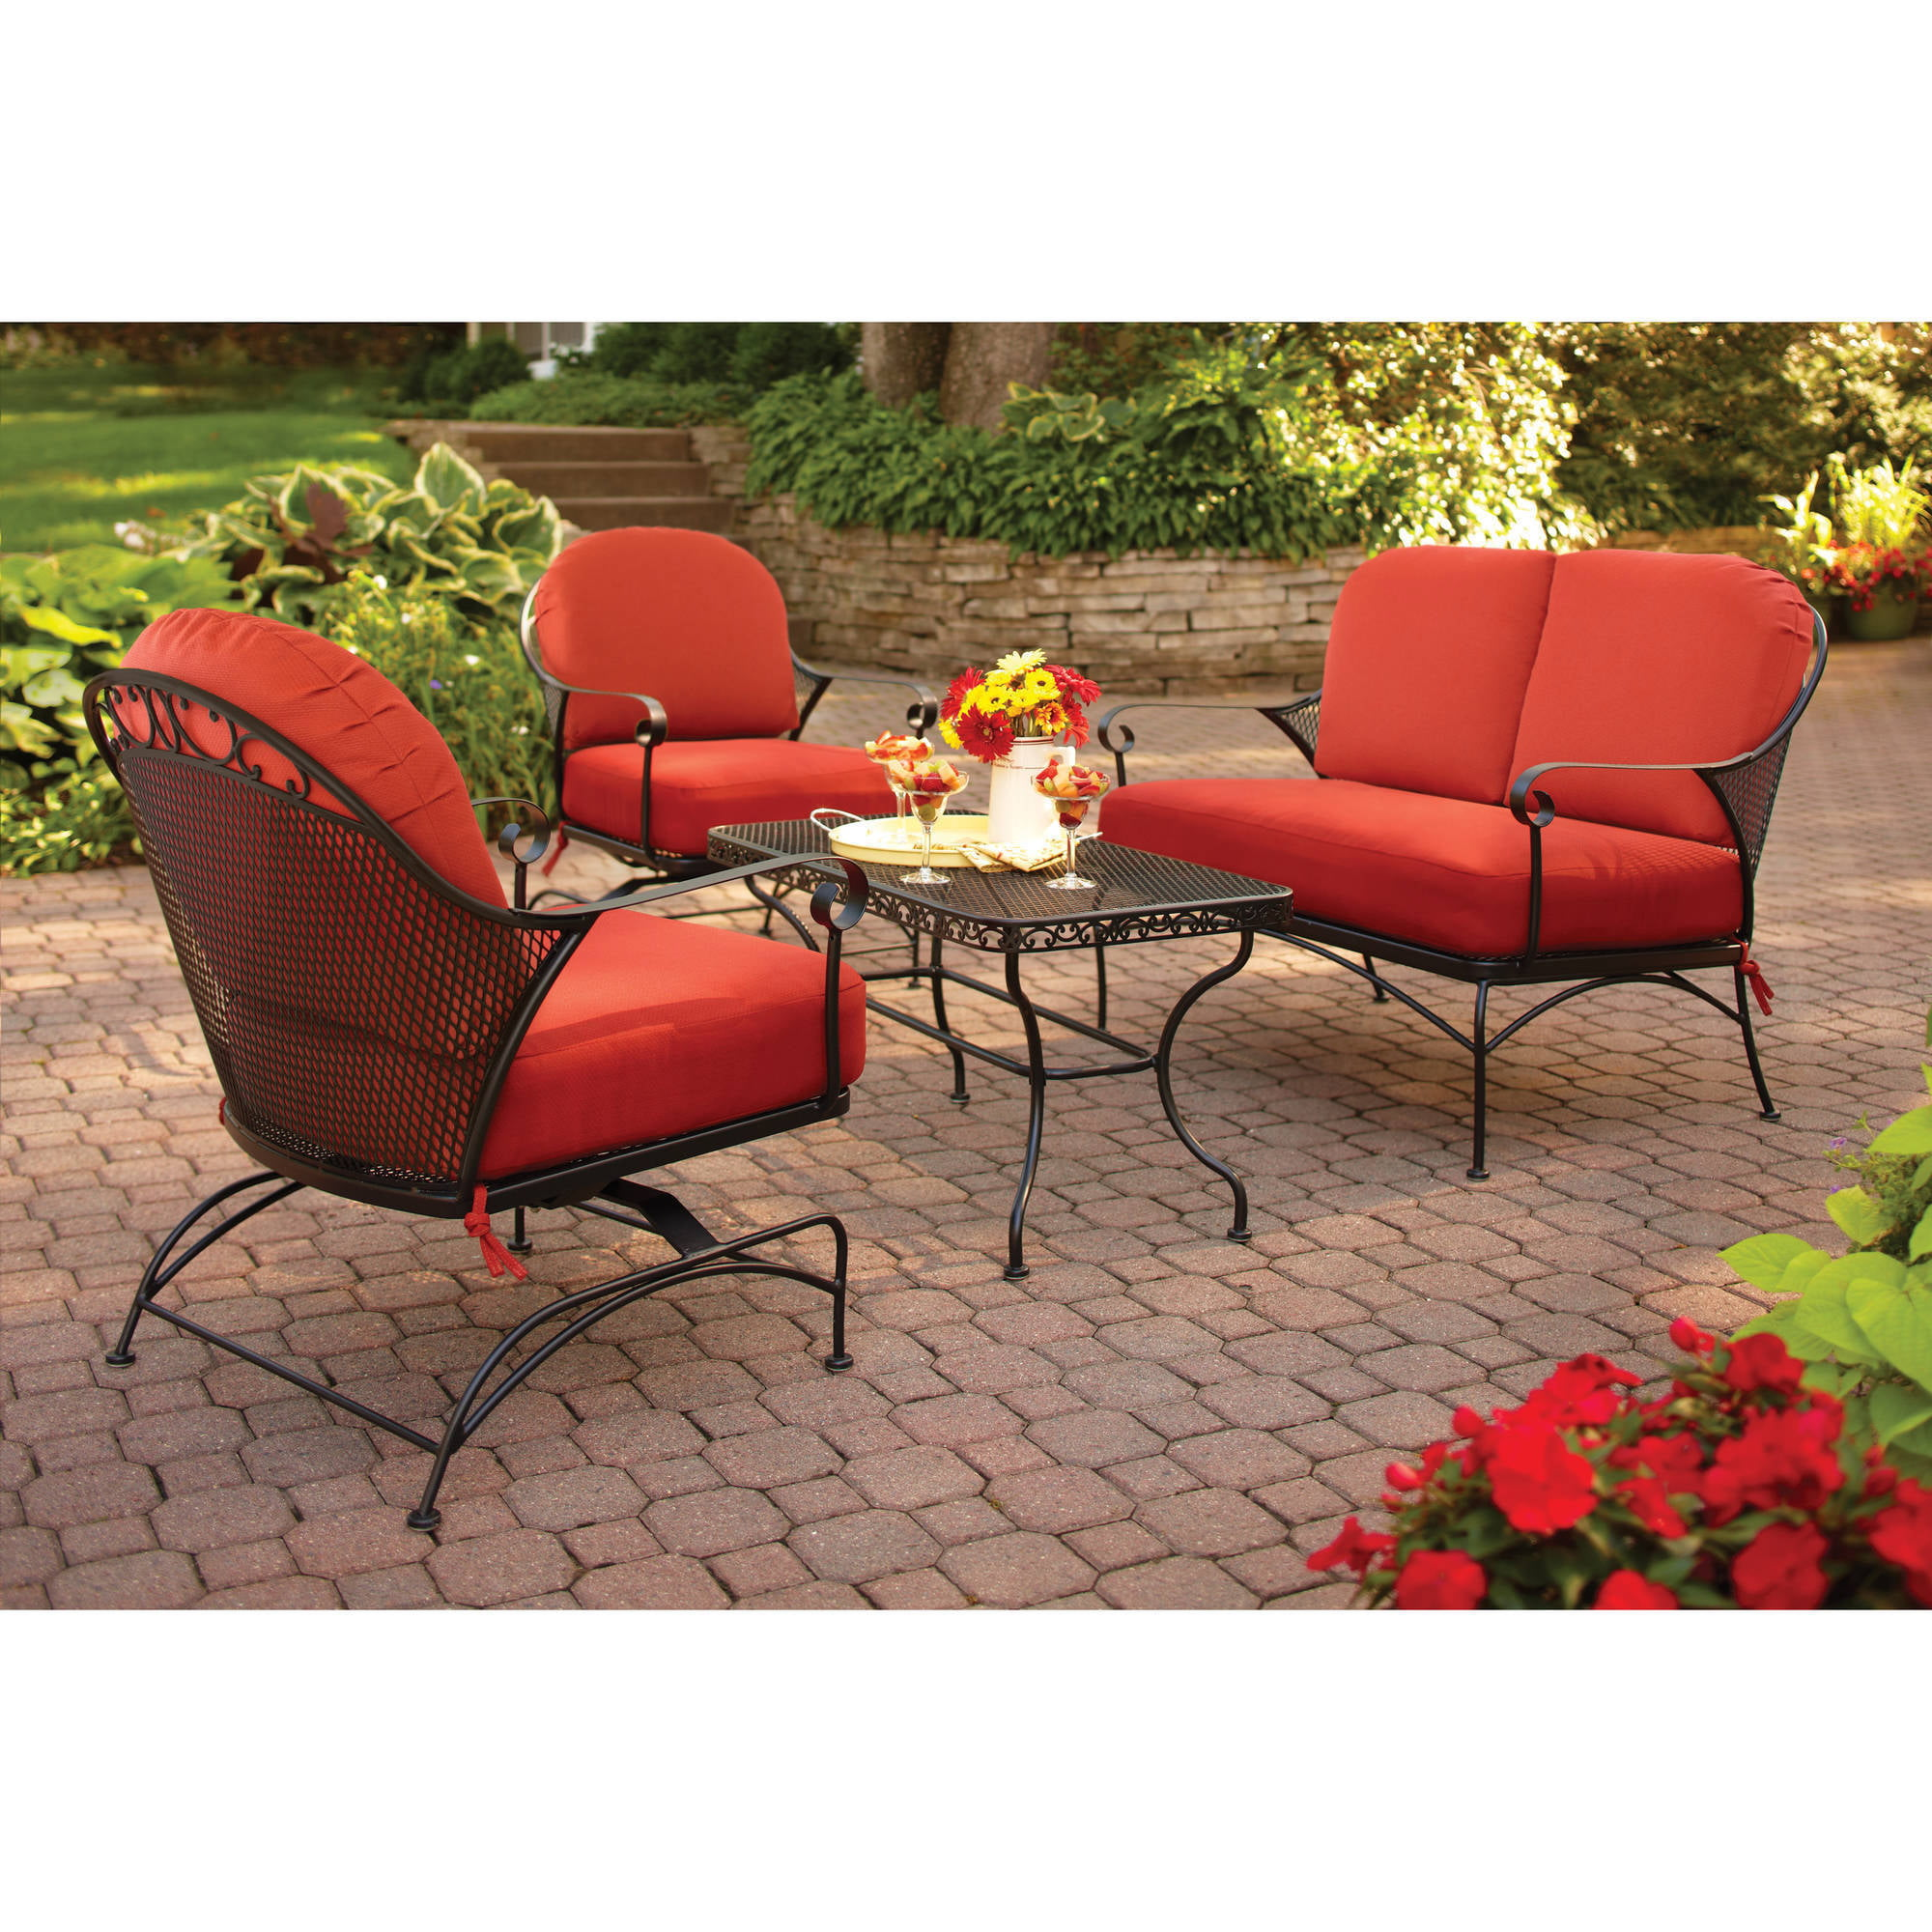 Better Homes & Gardens Clayton Court 13-Piece Patio Furniture Conversatio  Set, Metal - Walmart.com